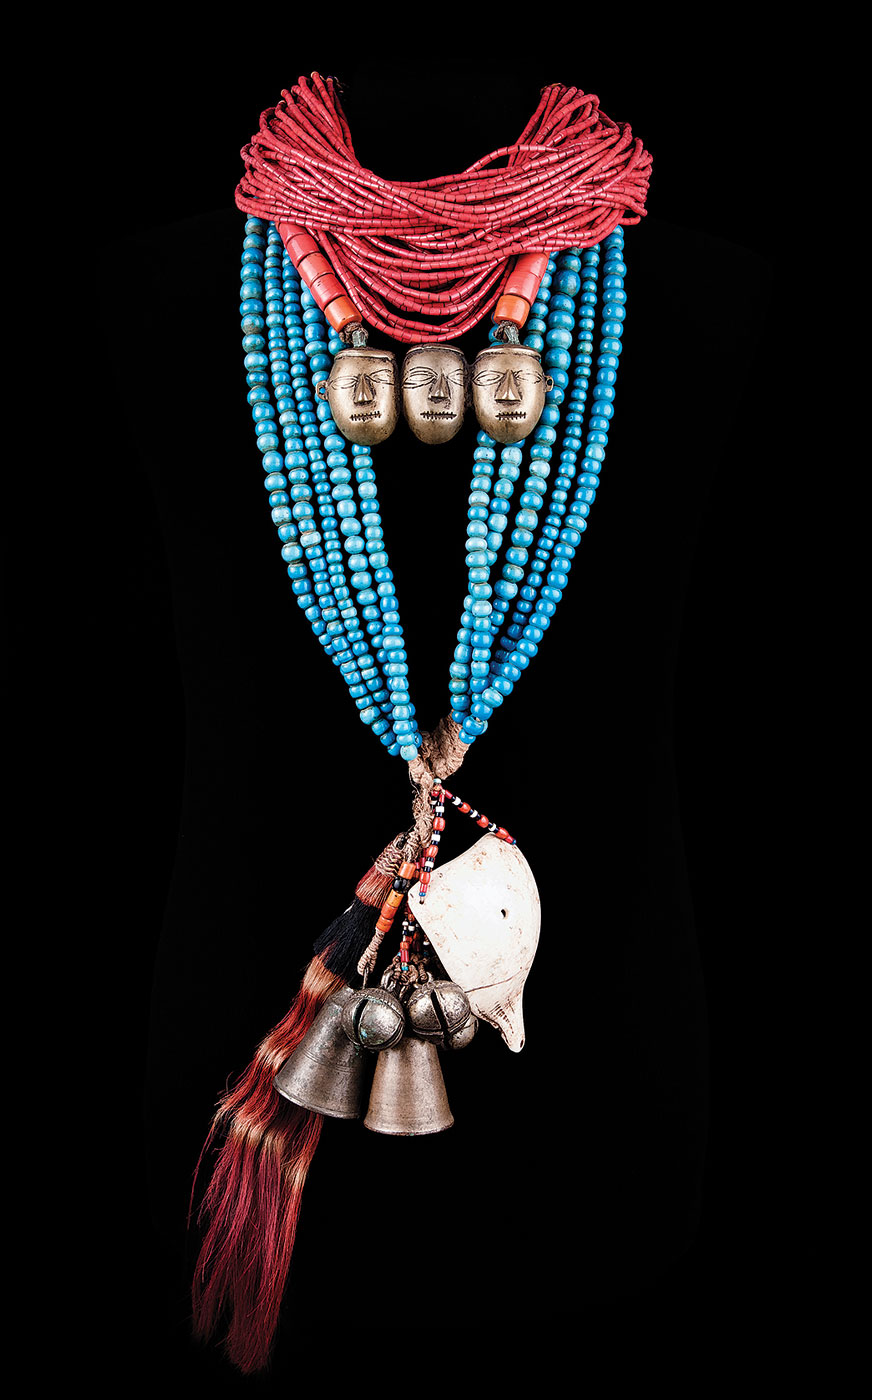 HEADHUNTER'S NECKLACES, Konyak Naga peoples, Nagaland, northeast India, of brass, glass beads, goat hair, conch shell, brass heads: 29.0 x 11.5 centimeters; blue beads: 58.0 centimeters; red beads: 26.5 centimeters, pre-1940.  Harry and Tiala M. Neufeld Collection.